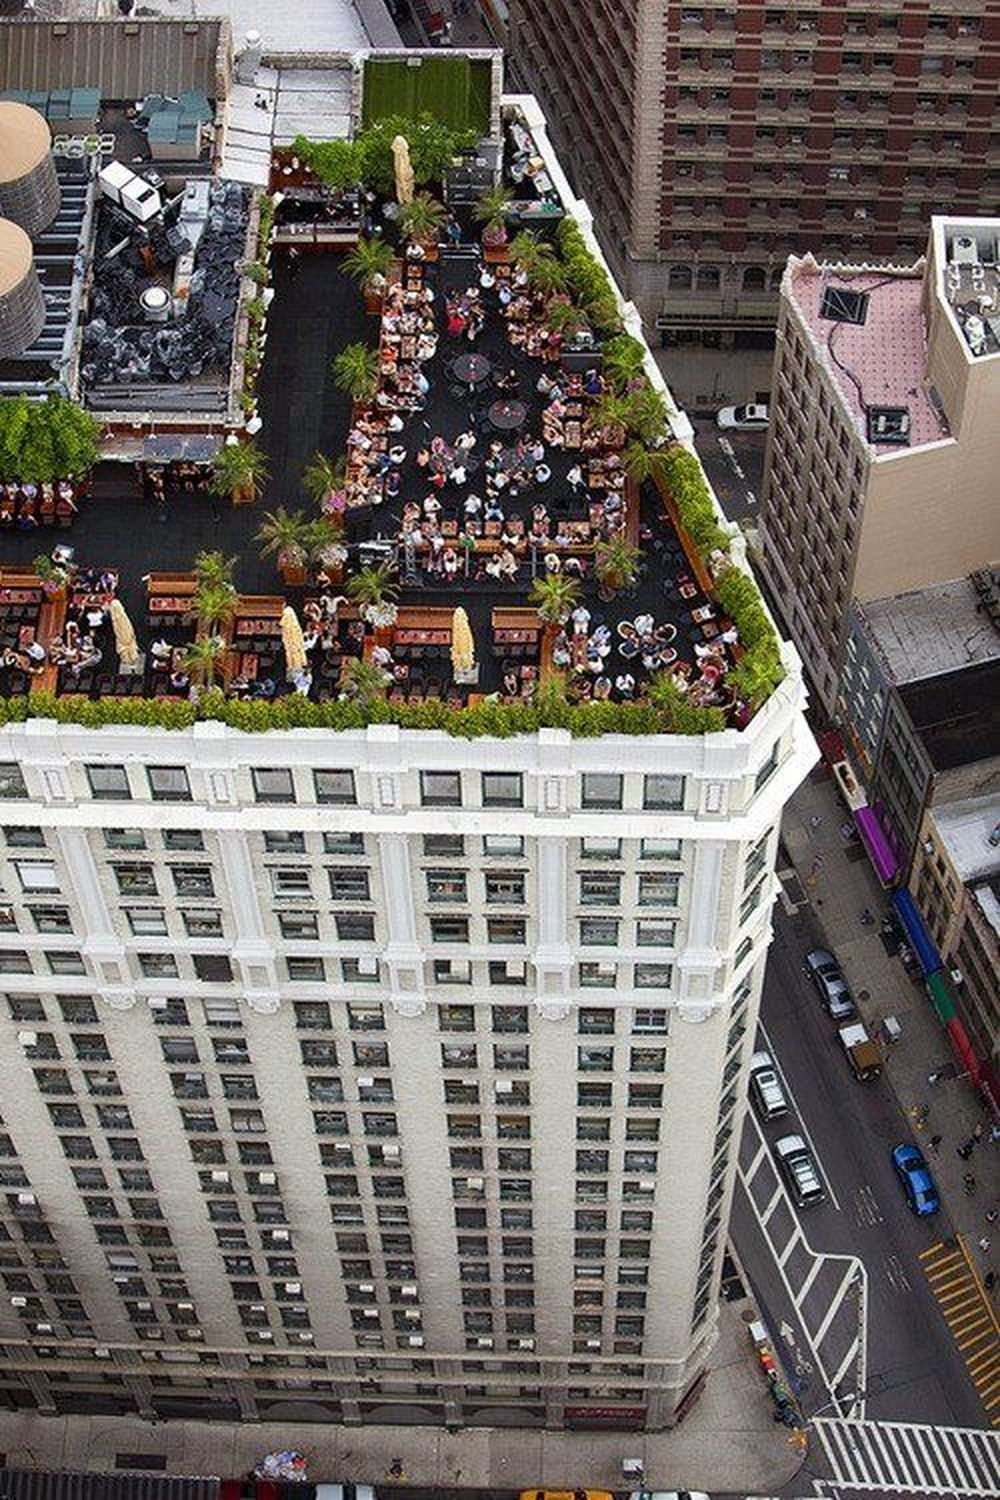 A Home Or Apartment That Has A Rooftop Terrace Can Offer Many Possibilities Including An Amazing View There 5th Avenue New York New York Travel New York City